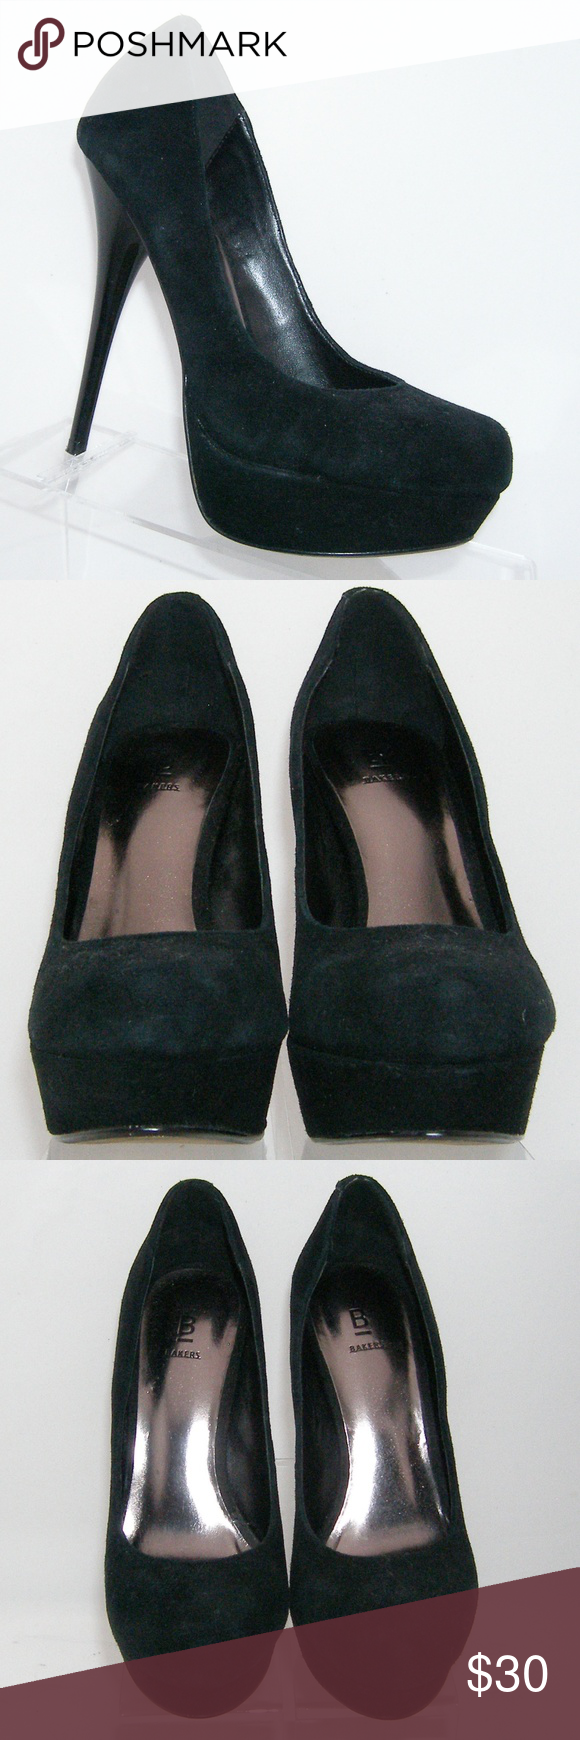 5e94499b70 Bakers Victoria black suede round toe heels 7M These Bakers shoes features  a suede upper